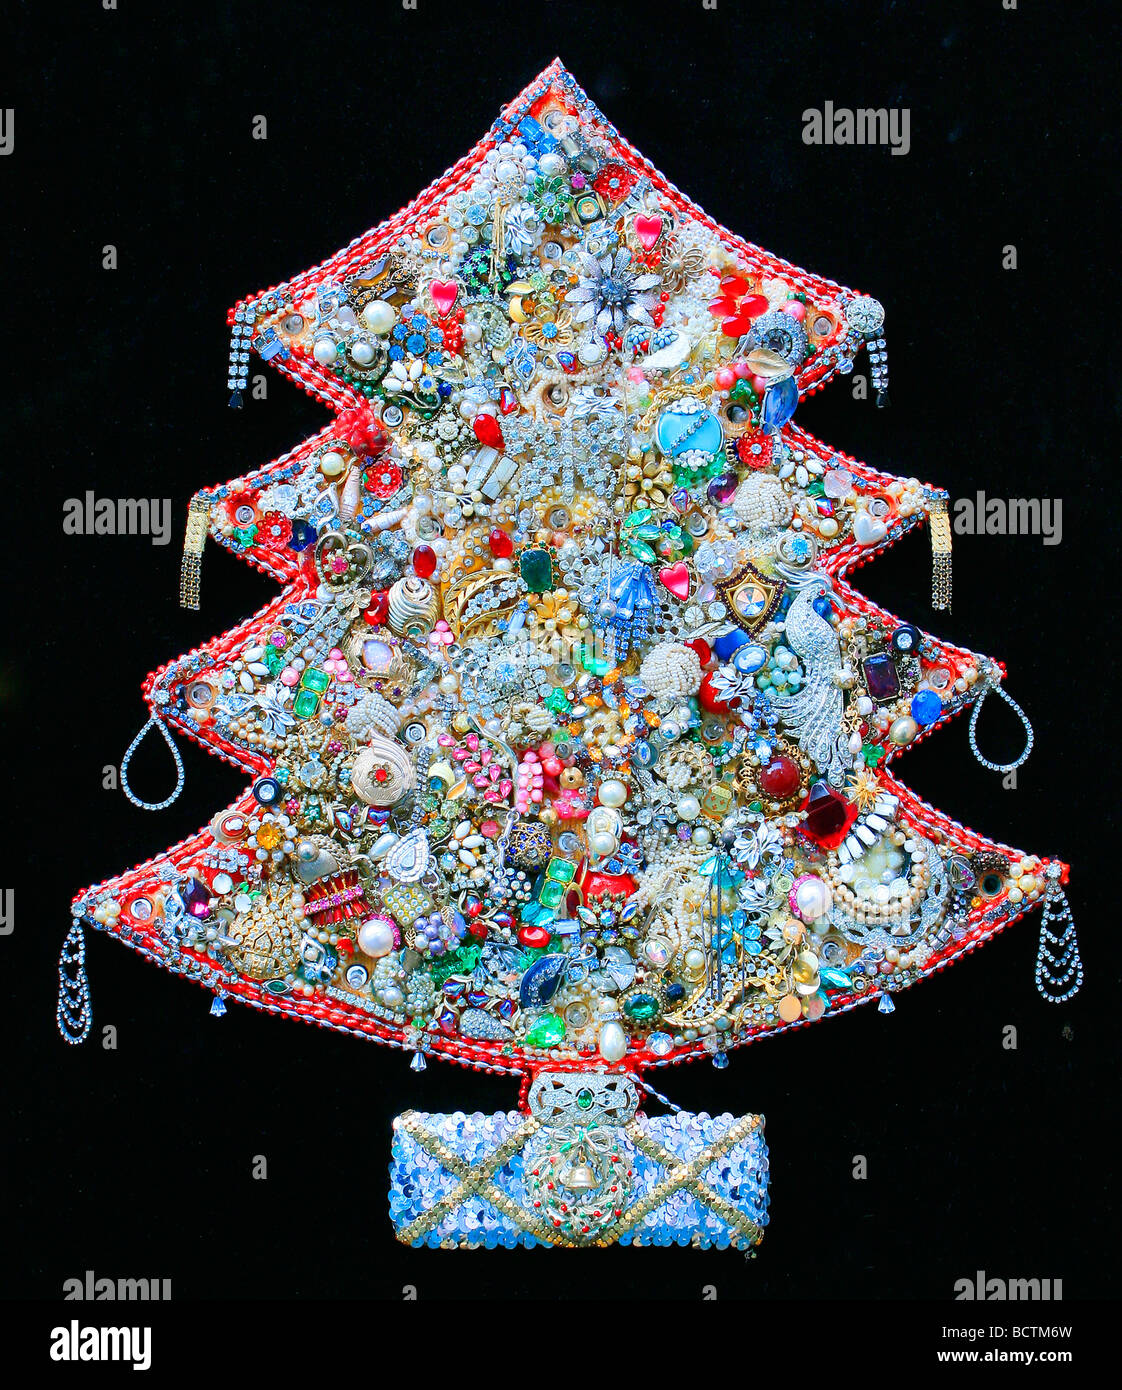 Dimensional Christmas Tree Made From Vintage Antique Jewelry Stock